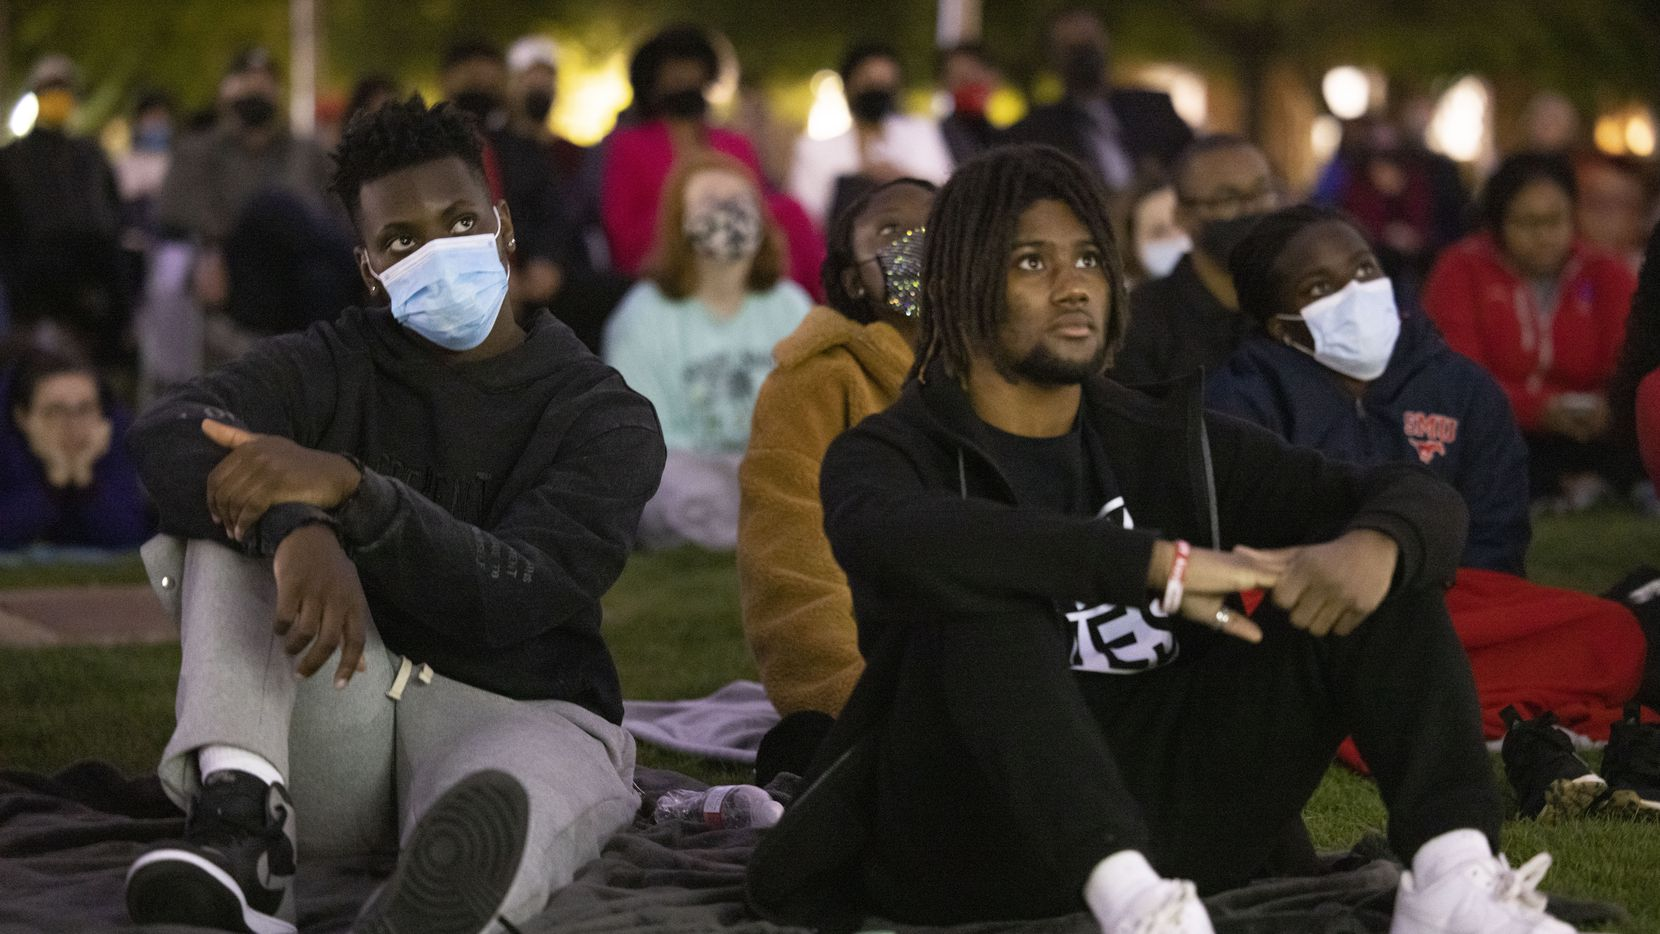 (From left) Students Ogheneferga Evuarherhe and Matthieu Legagneur watch the #BlackAtSMU film, which documents five Black students' encounters with racism at SMU, at the Dallas Hall Lawn on SMU's campus on Wednesday.